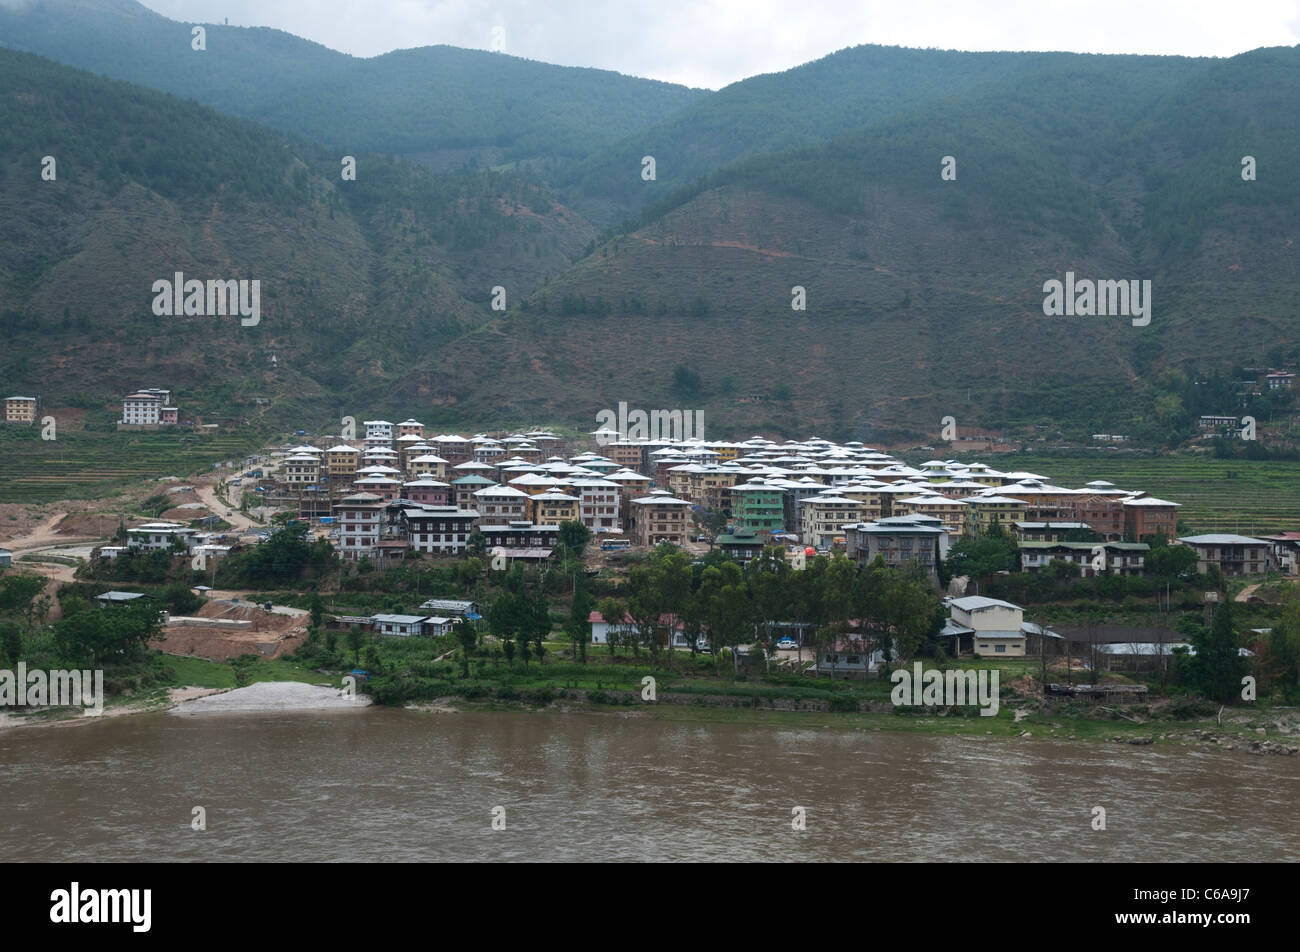 View of the new city of Wangdue with river and mountains. bhutan - Stock Image